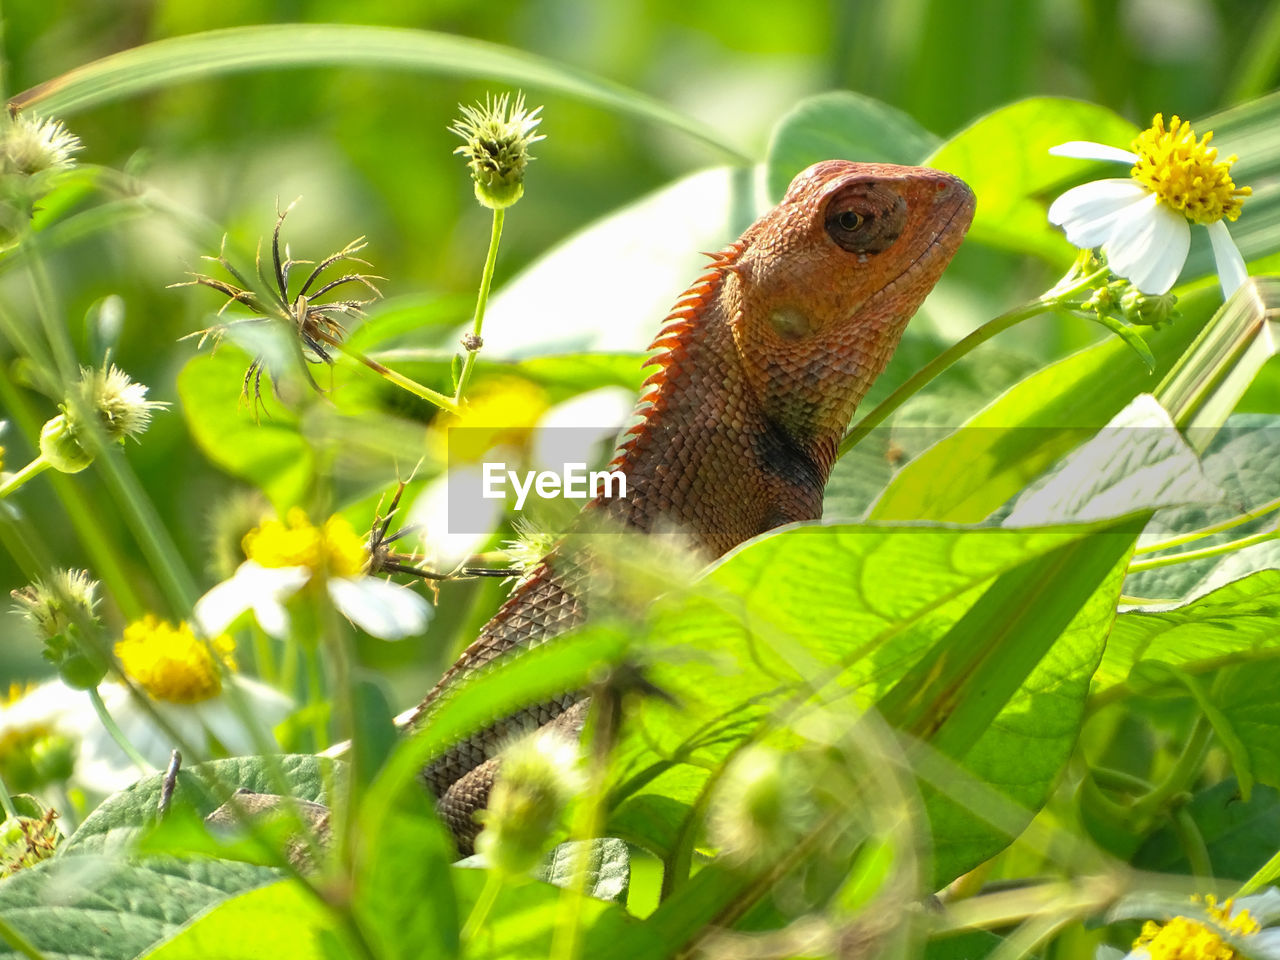 animal, animal themes, one animal, plant, animals in the wild, animal wildlife, flower, flowering plant, green color, growth, nature, vertebrate, beauty in nature, day, close-up, leaf, no people, plant part, selective focus, reptile, outdoors, butterfly - insect, flower head